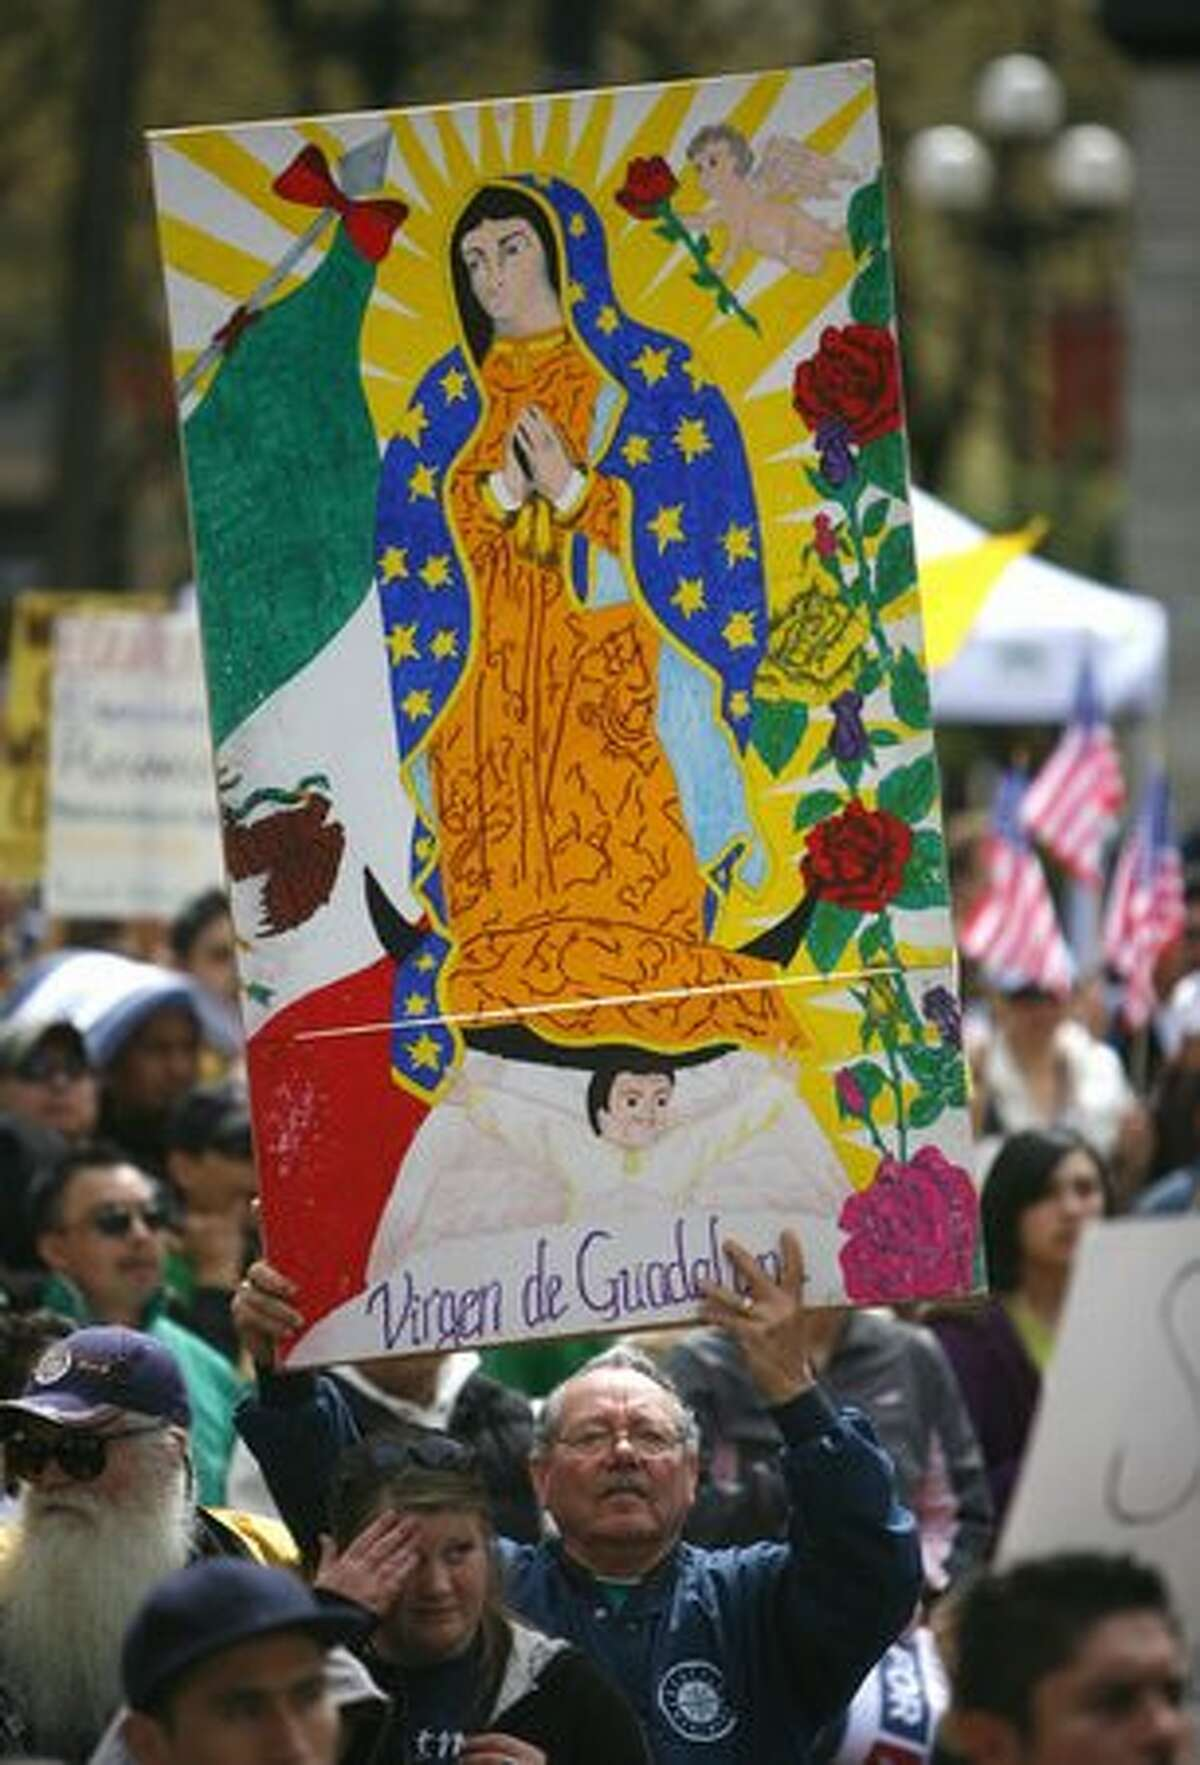 An estimated 7,000 people gather during an immigration reform rally in Seattle's Occidental Park on Saturday April 10, 2010. Speaker Pramila Jayapal, executive director of OneAmerica, said her organization is demanding that a bill be introduced in congress for immigration reform by May 1st.